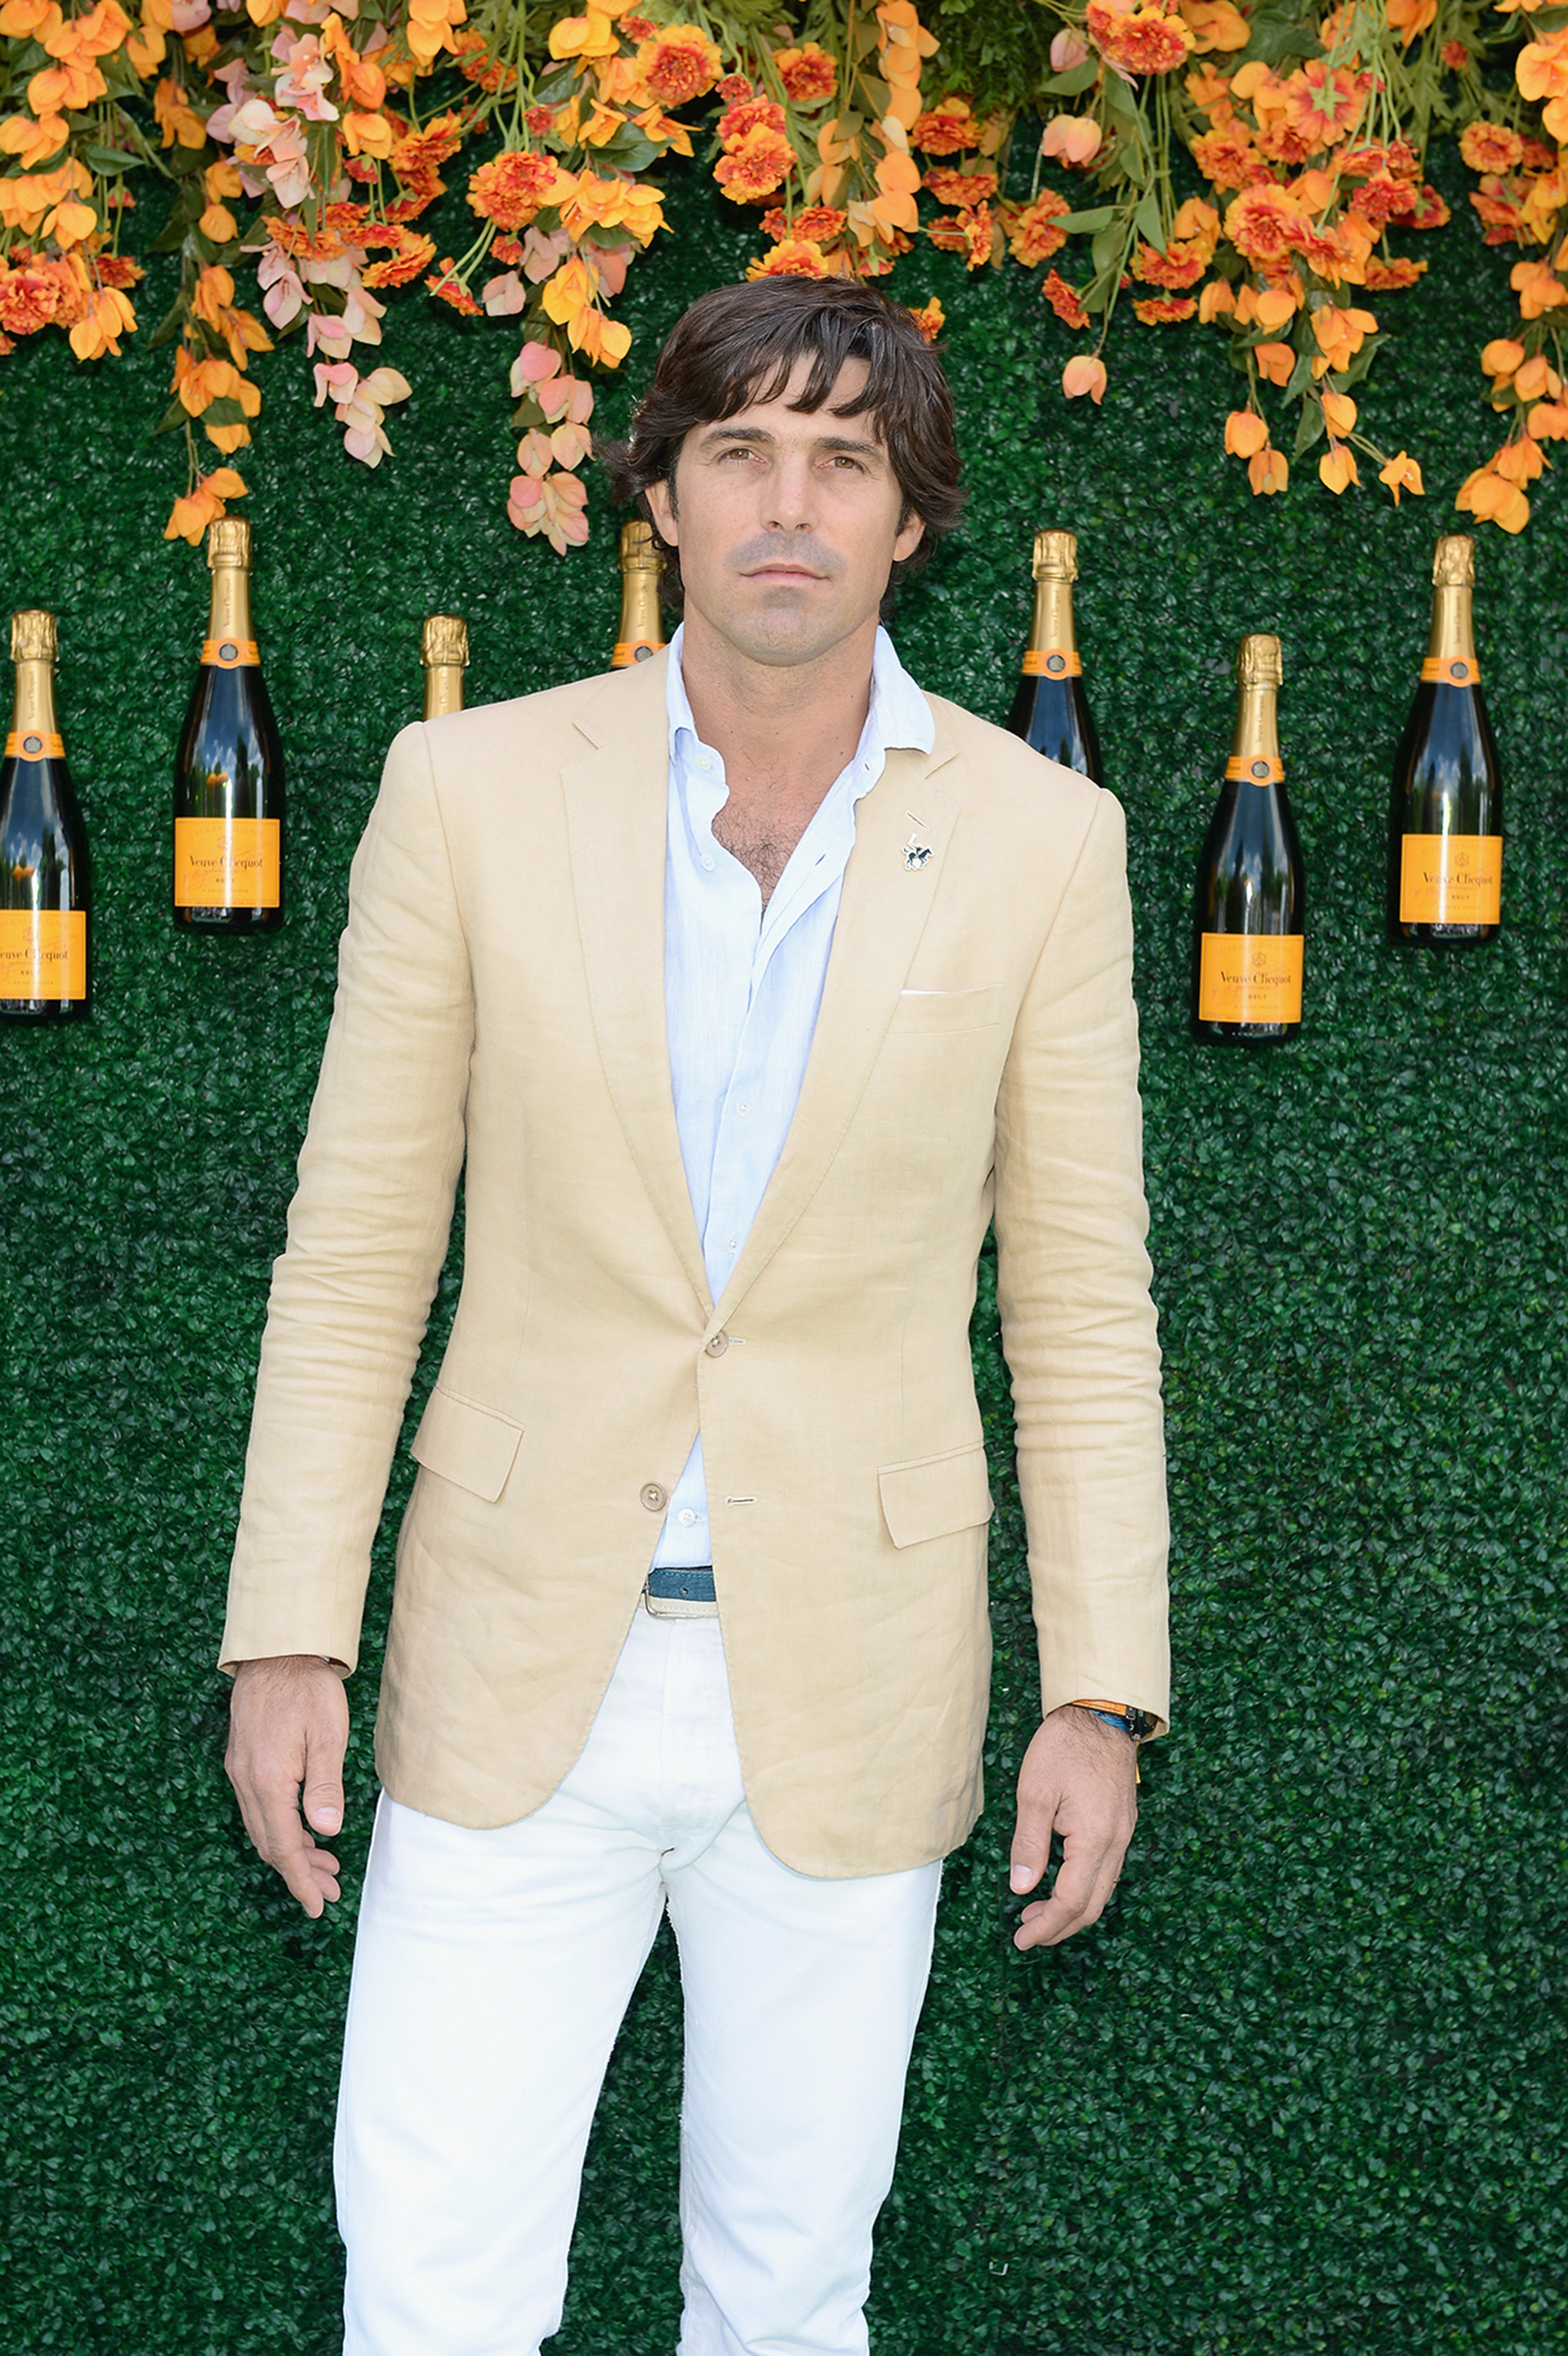 (Andrew Toth/Getty Images for Veuve Clicquot)